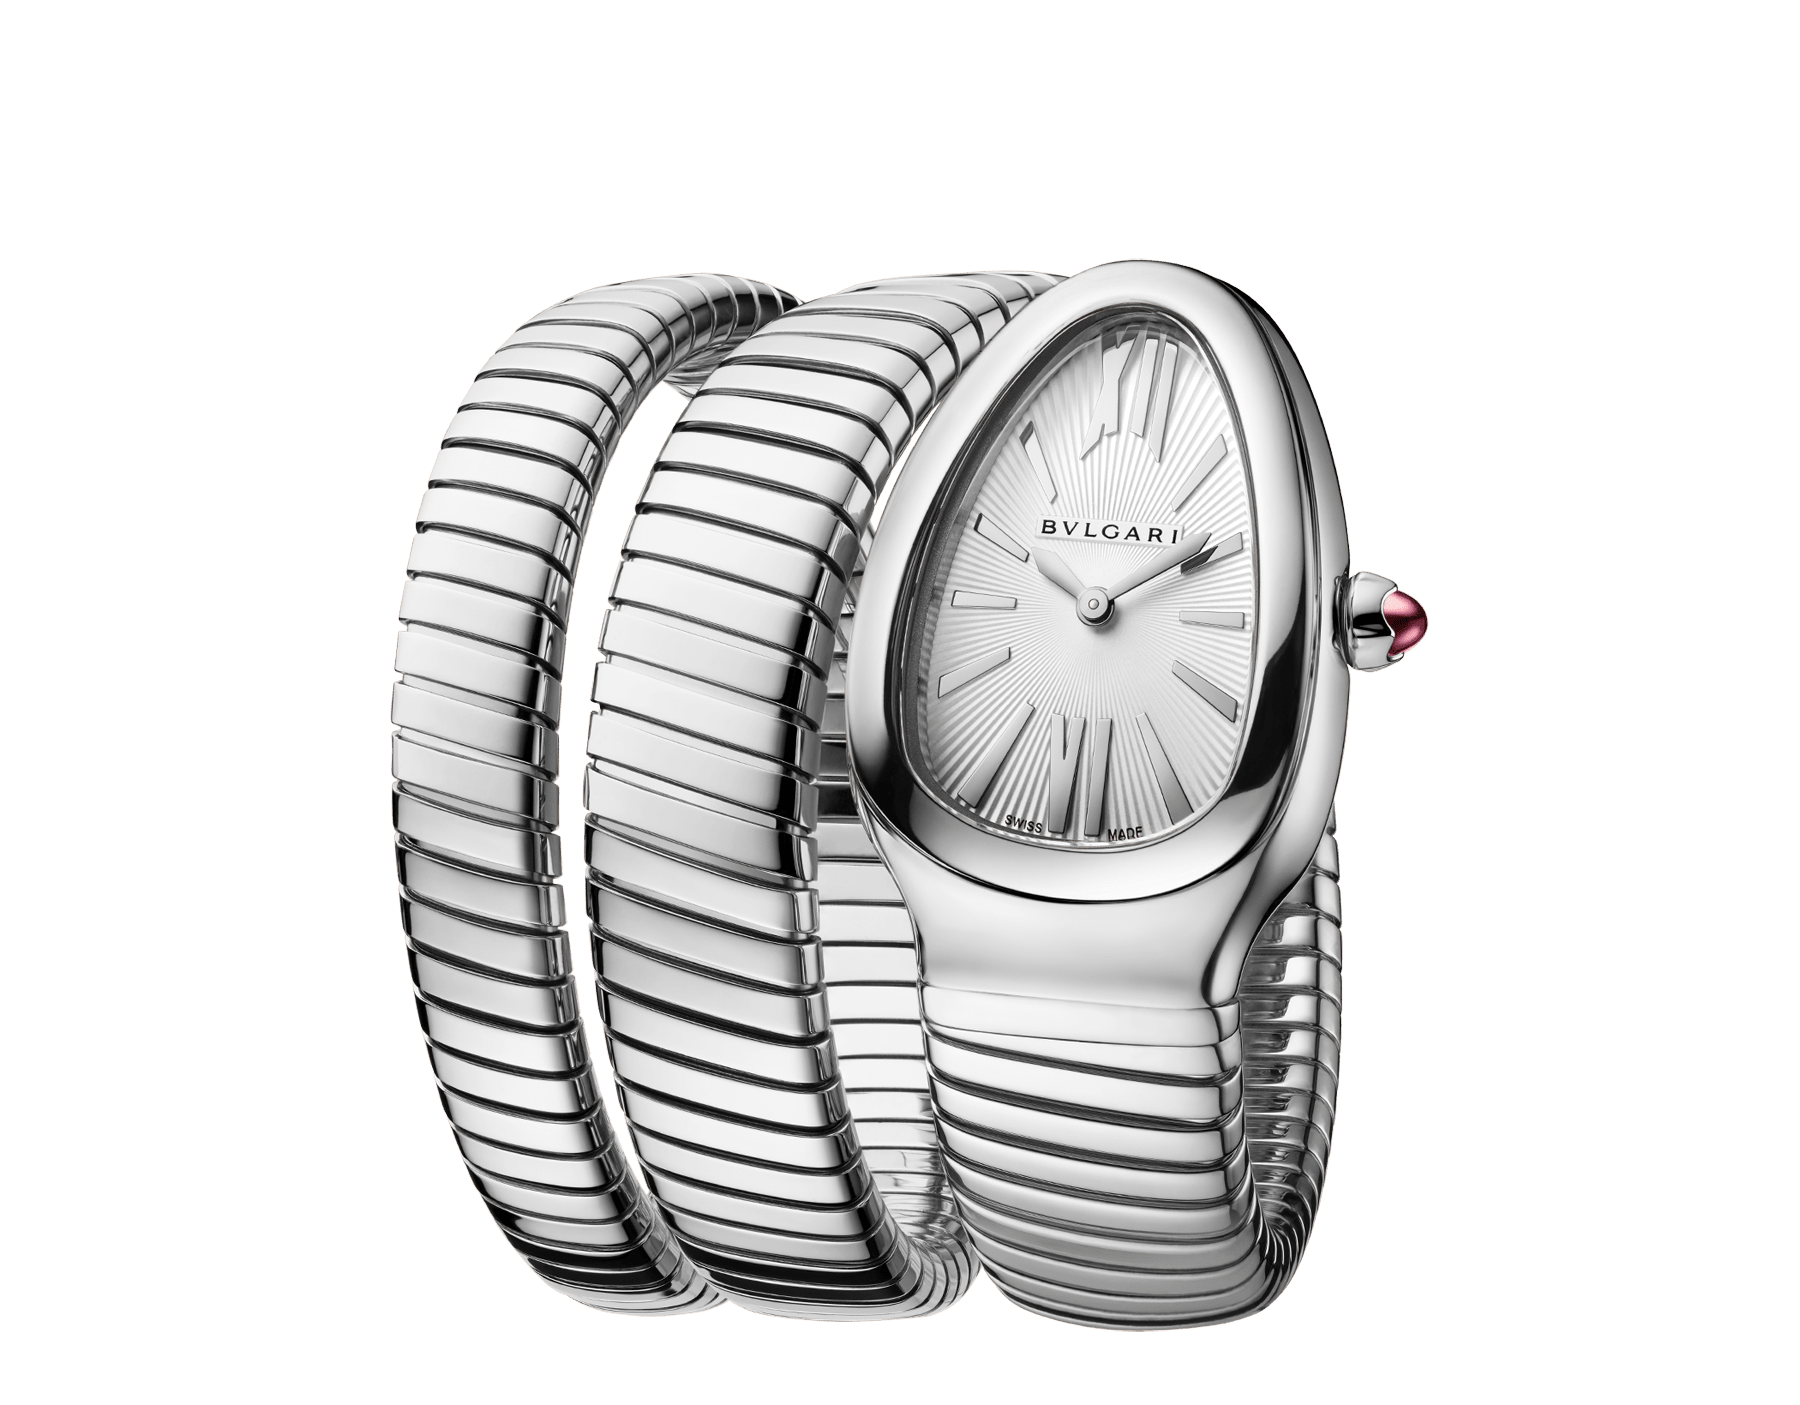 Serpenti Tubogas double spiral watch in stainless steel case and bracelet, with silver opaline dial. 101911 image 2